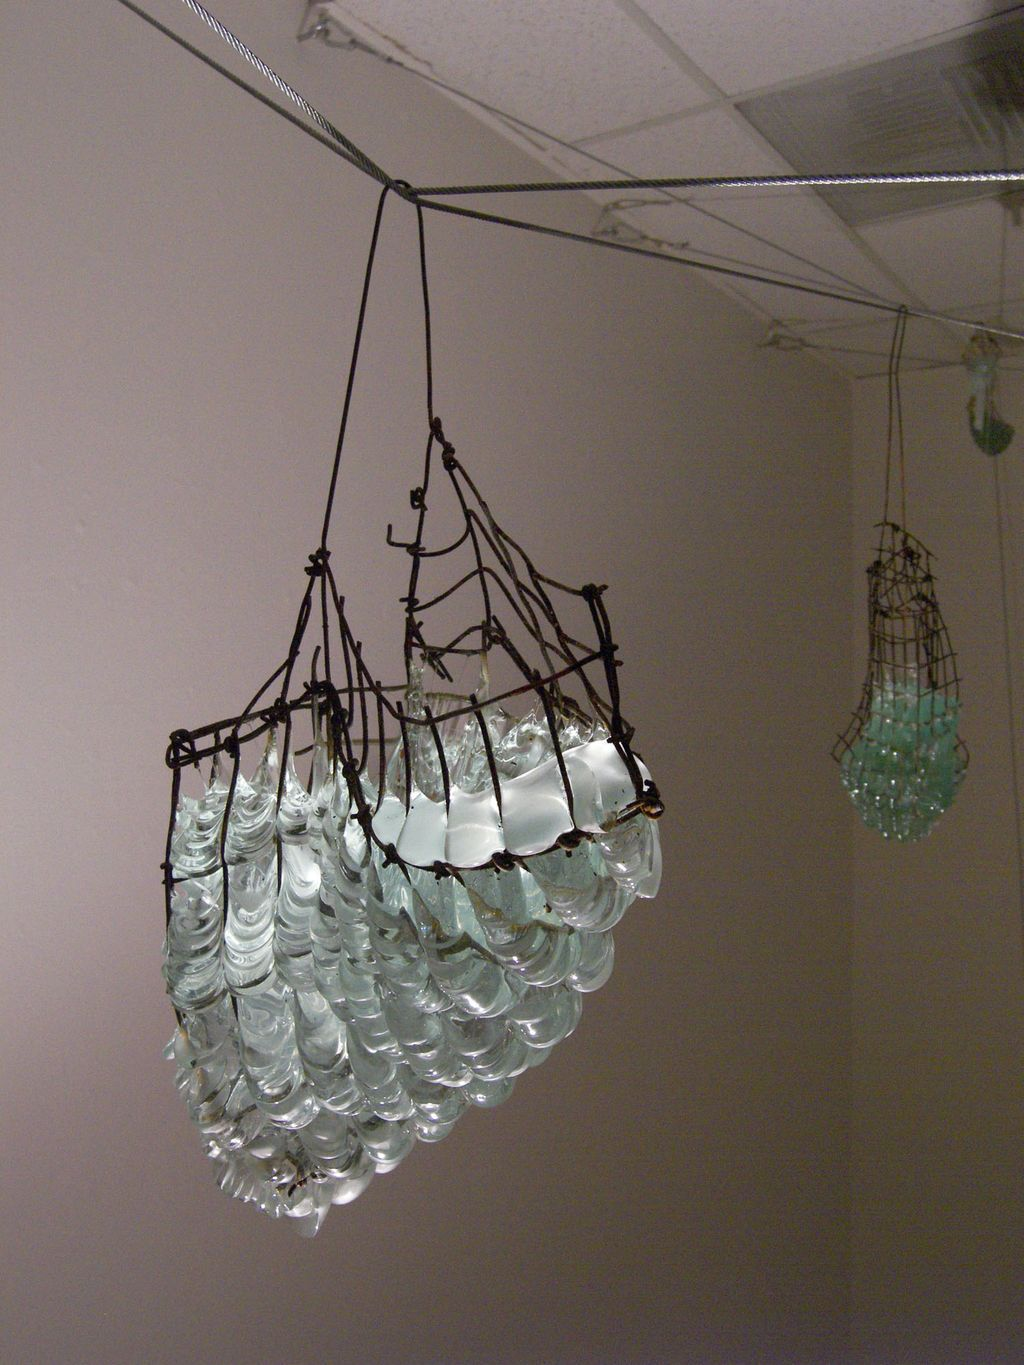 Elissa Batchlay, Untitled, window glass and steel mesh